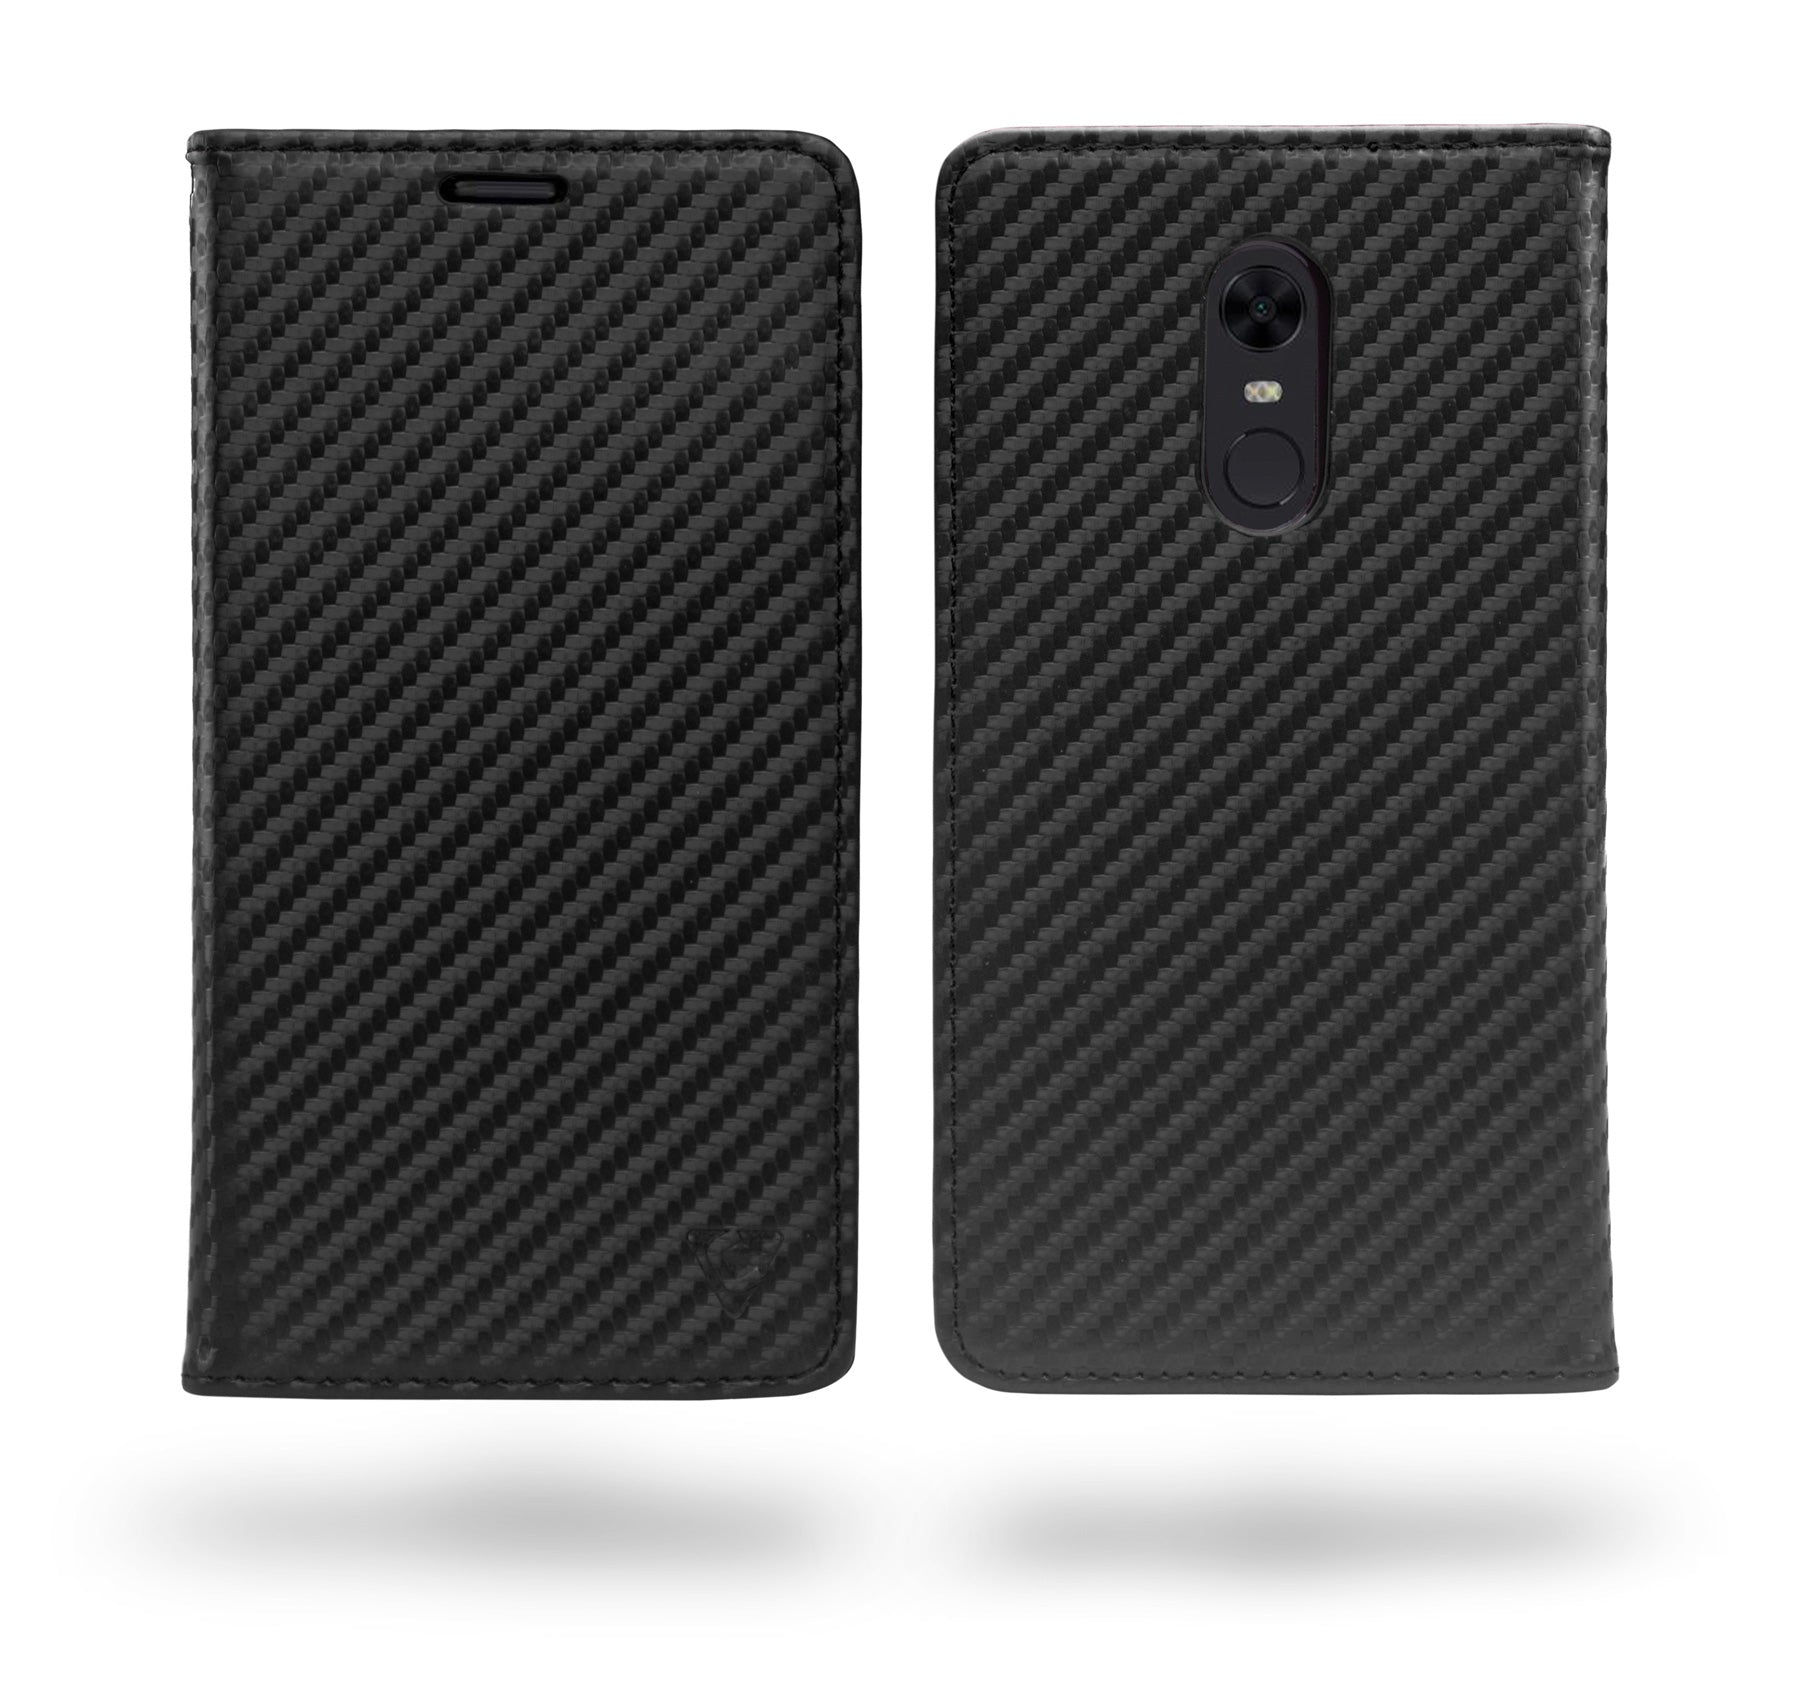 Ceego Compact Carbon Fiber Flip Cover for Xiaomi Redmi Note 5 With Magnetic Lock (Super Black)